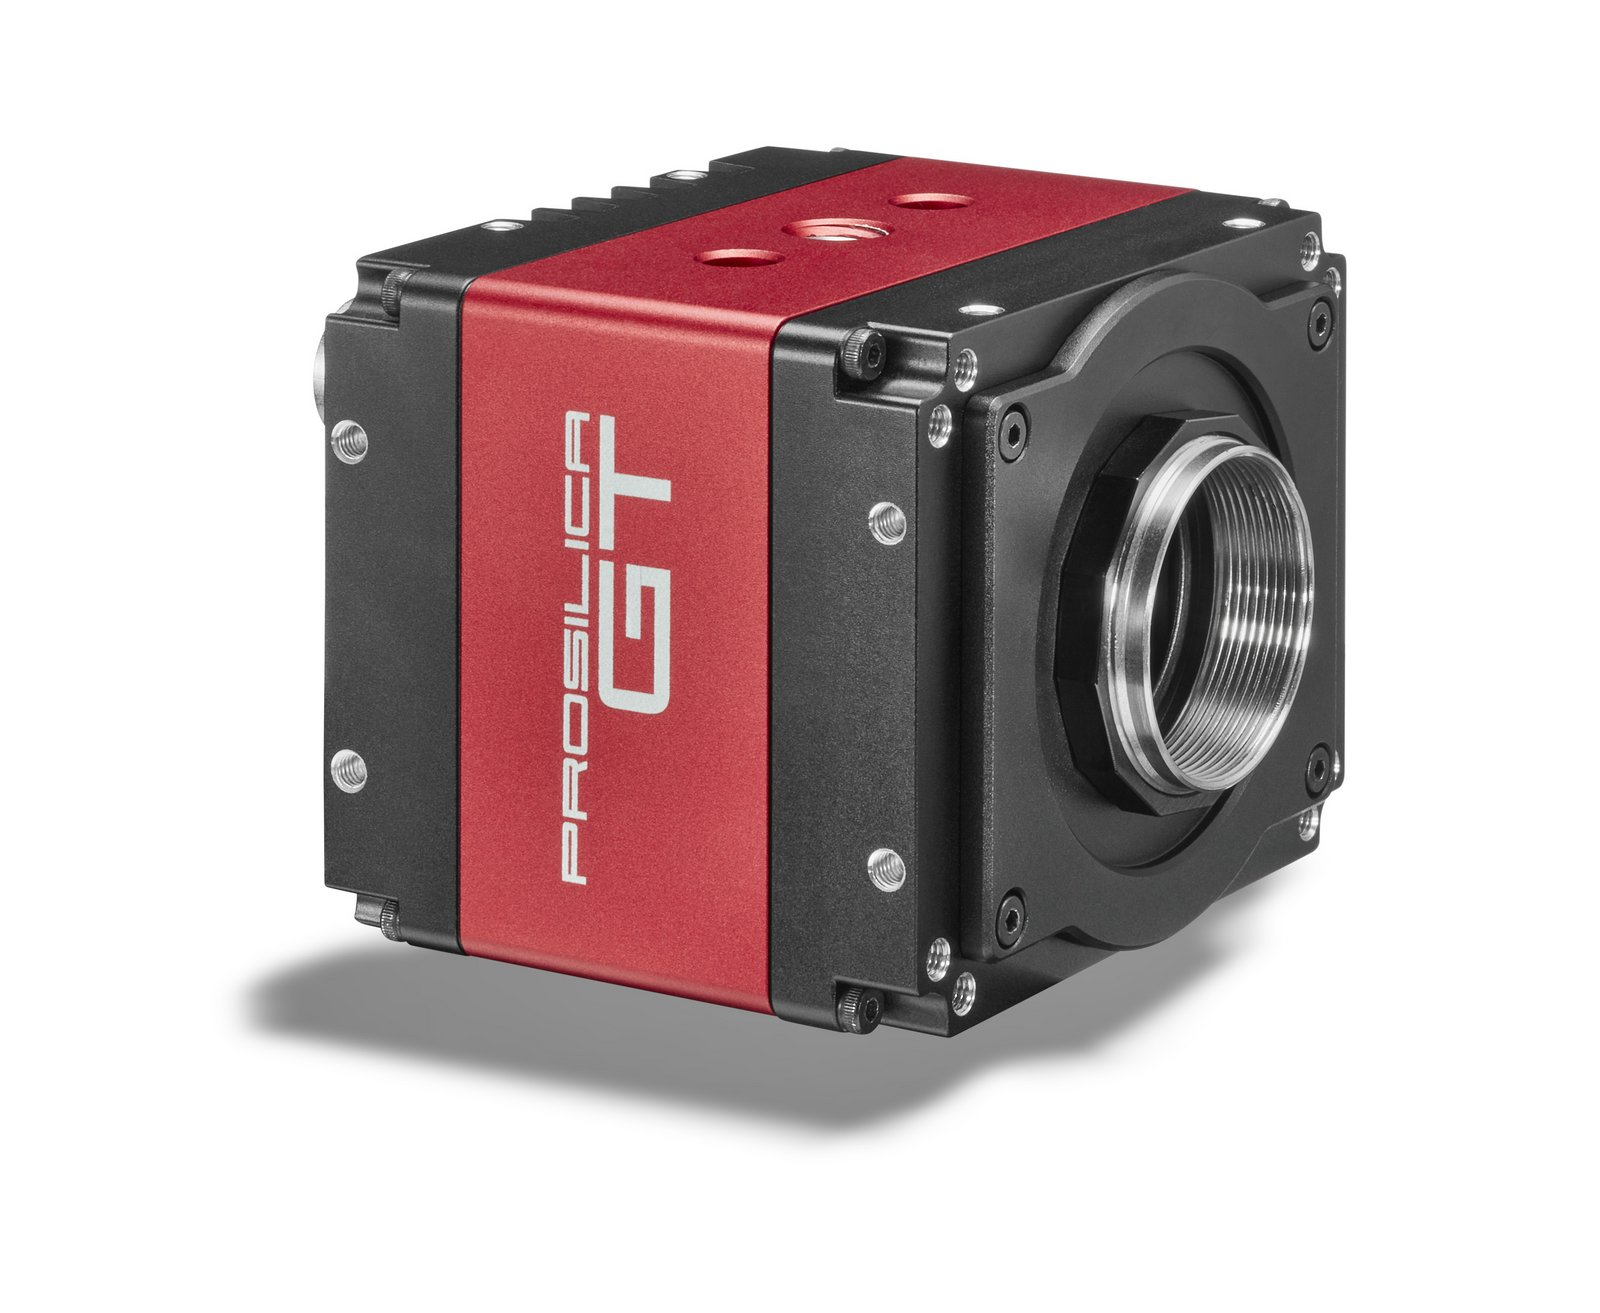 New high-resolution Prosilica GT cameras with C-Mount